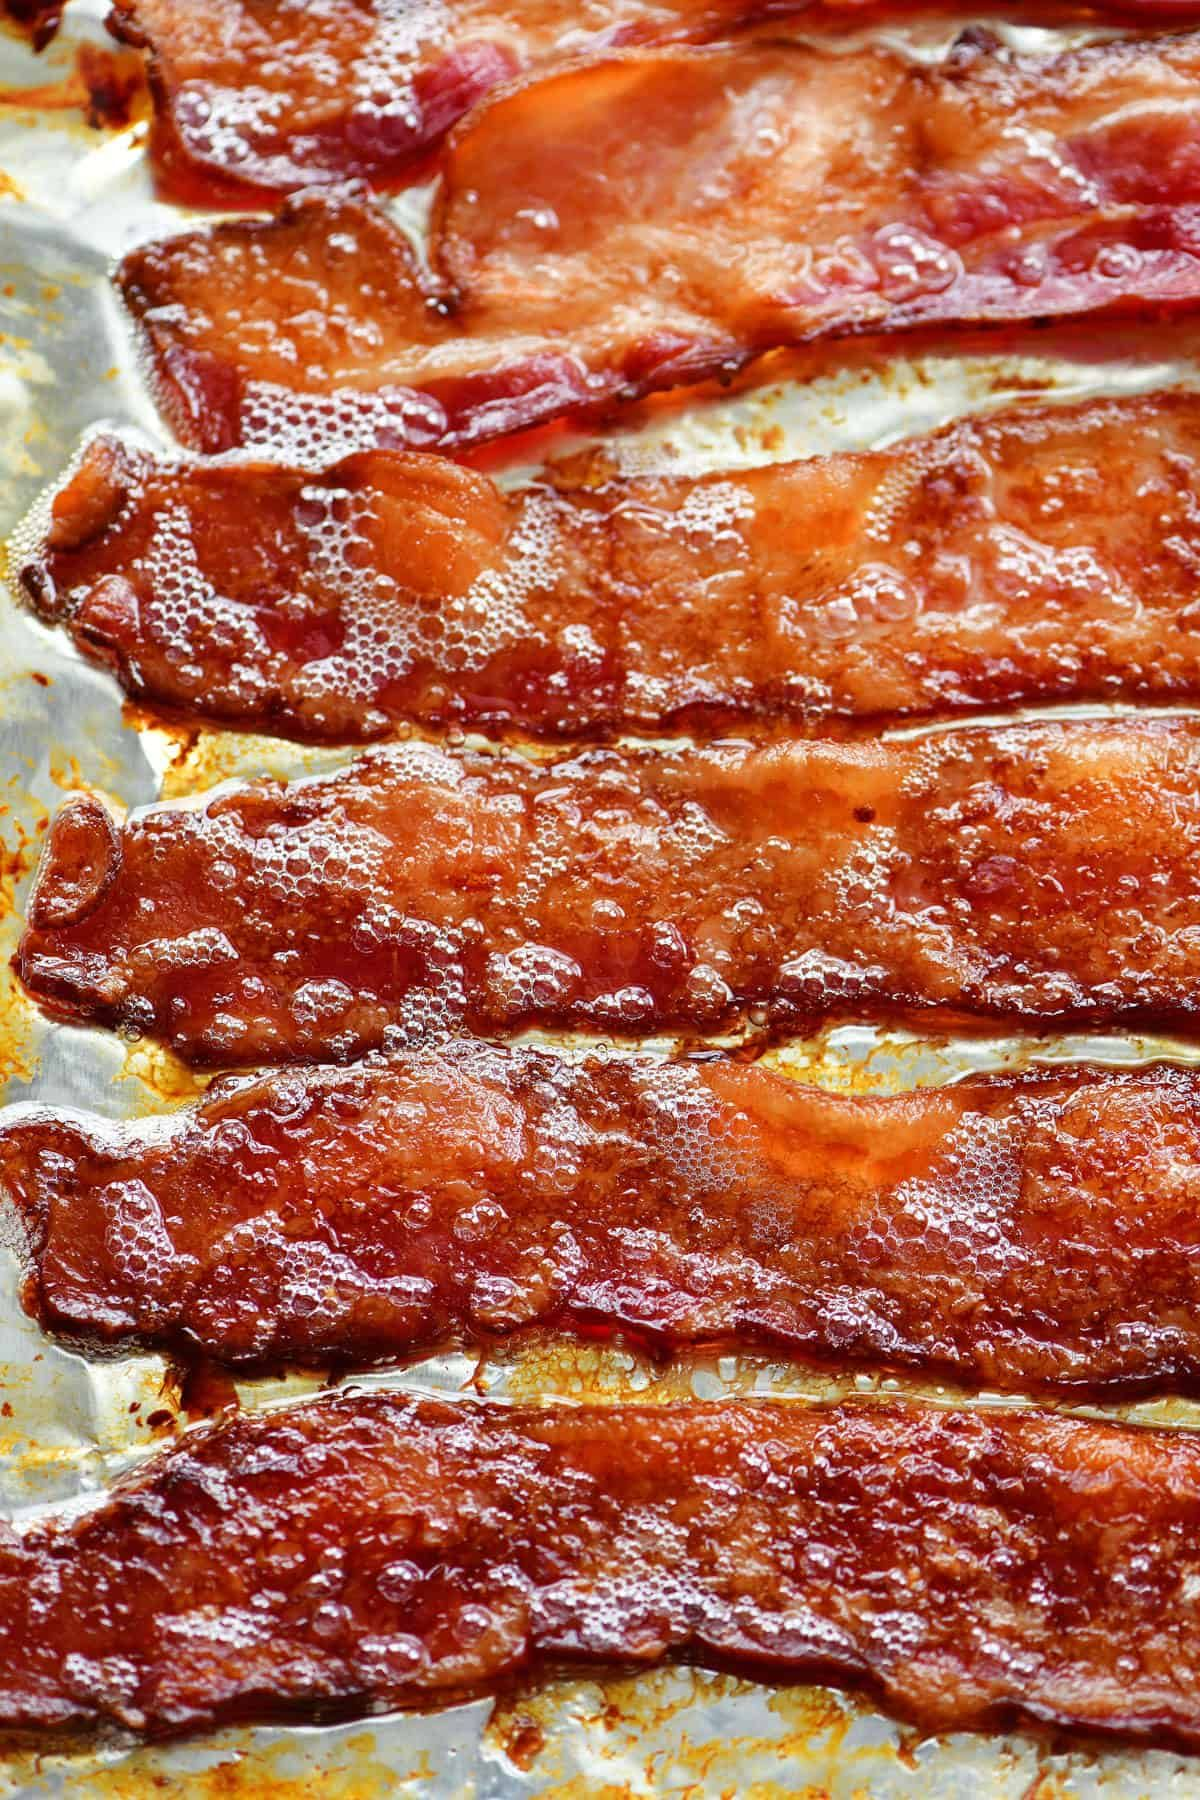 How To Cook Bacon In The Oven - The Gunny Sack in 2020 ...